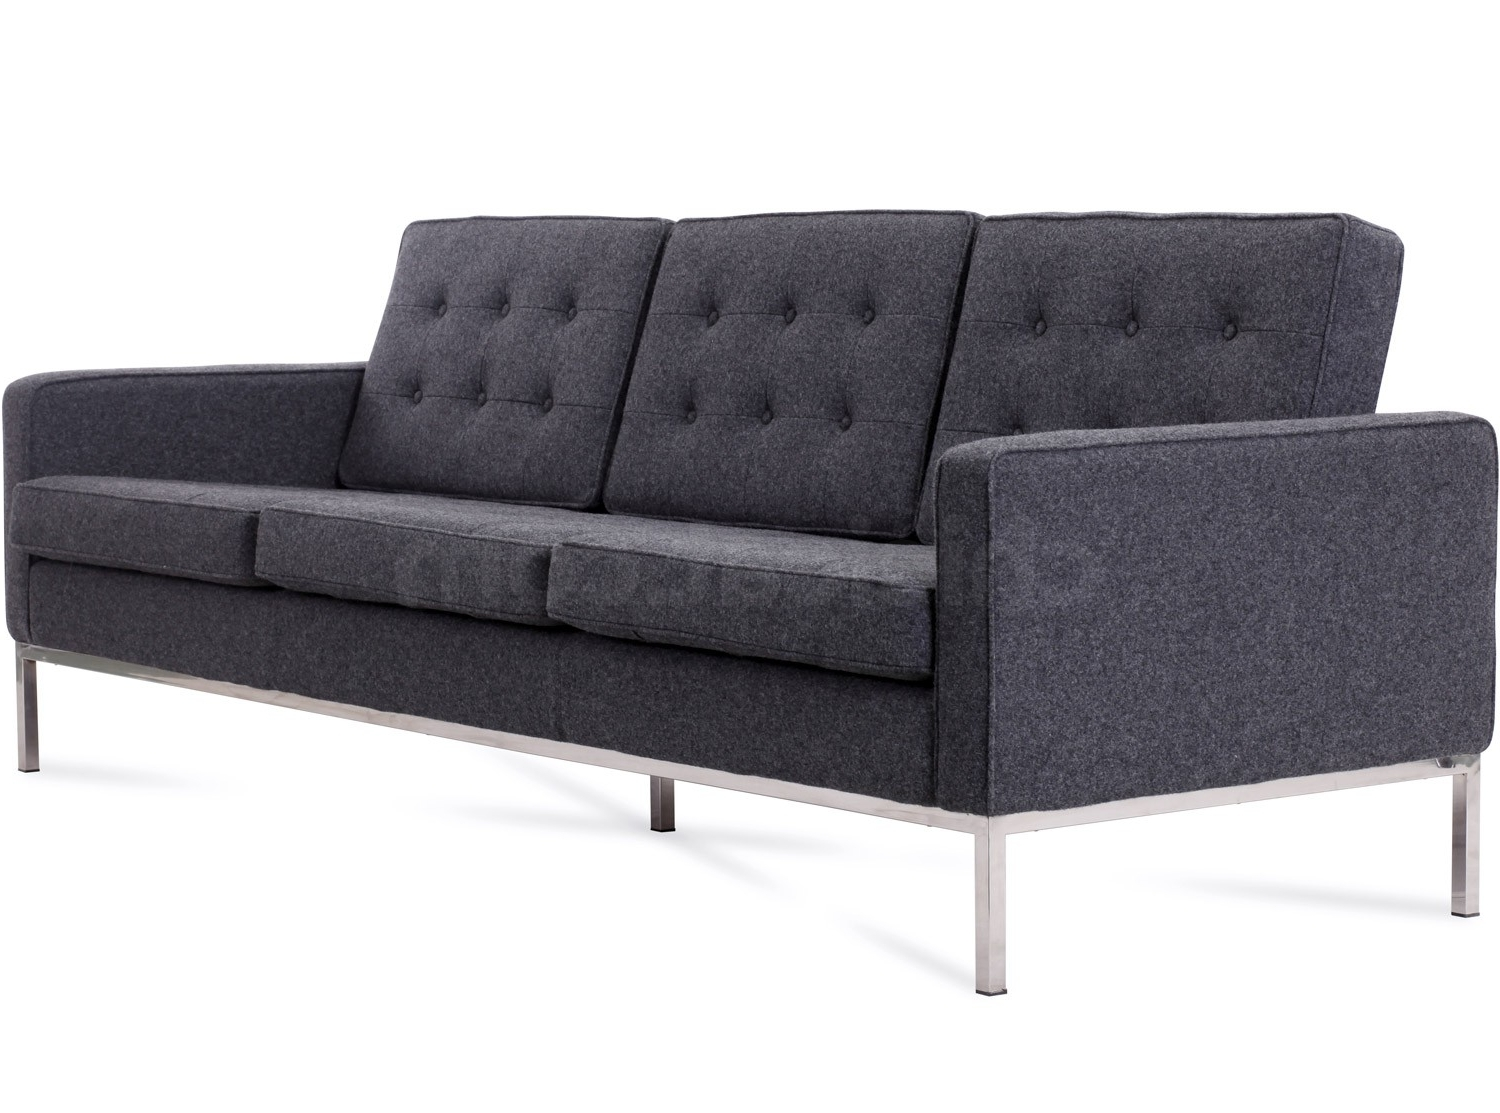 Florence Knoll 3 Seater Sofas Pertaining To Popular Florence Knoll Sofa 3 Seater Wool (Platinum Replica) (View 6 of 20)